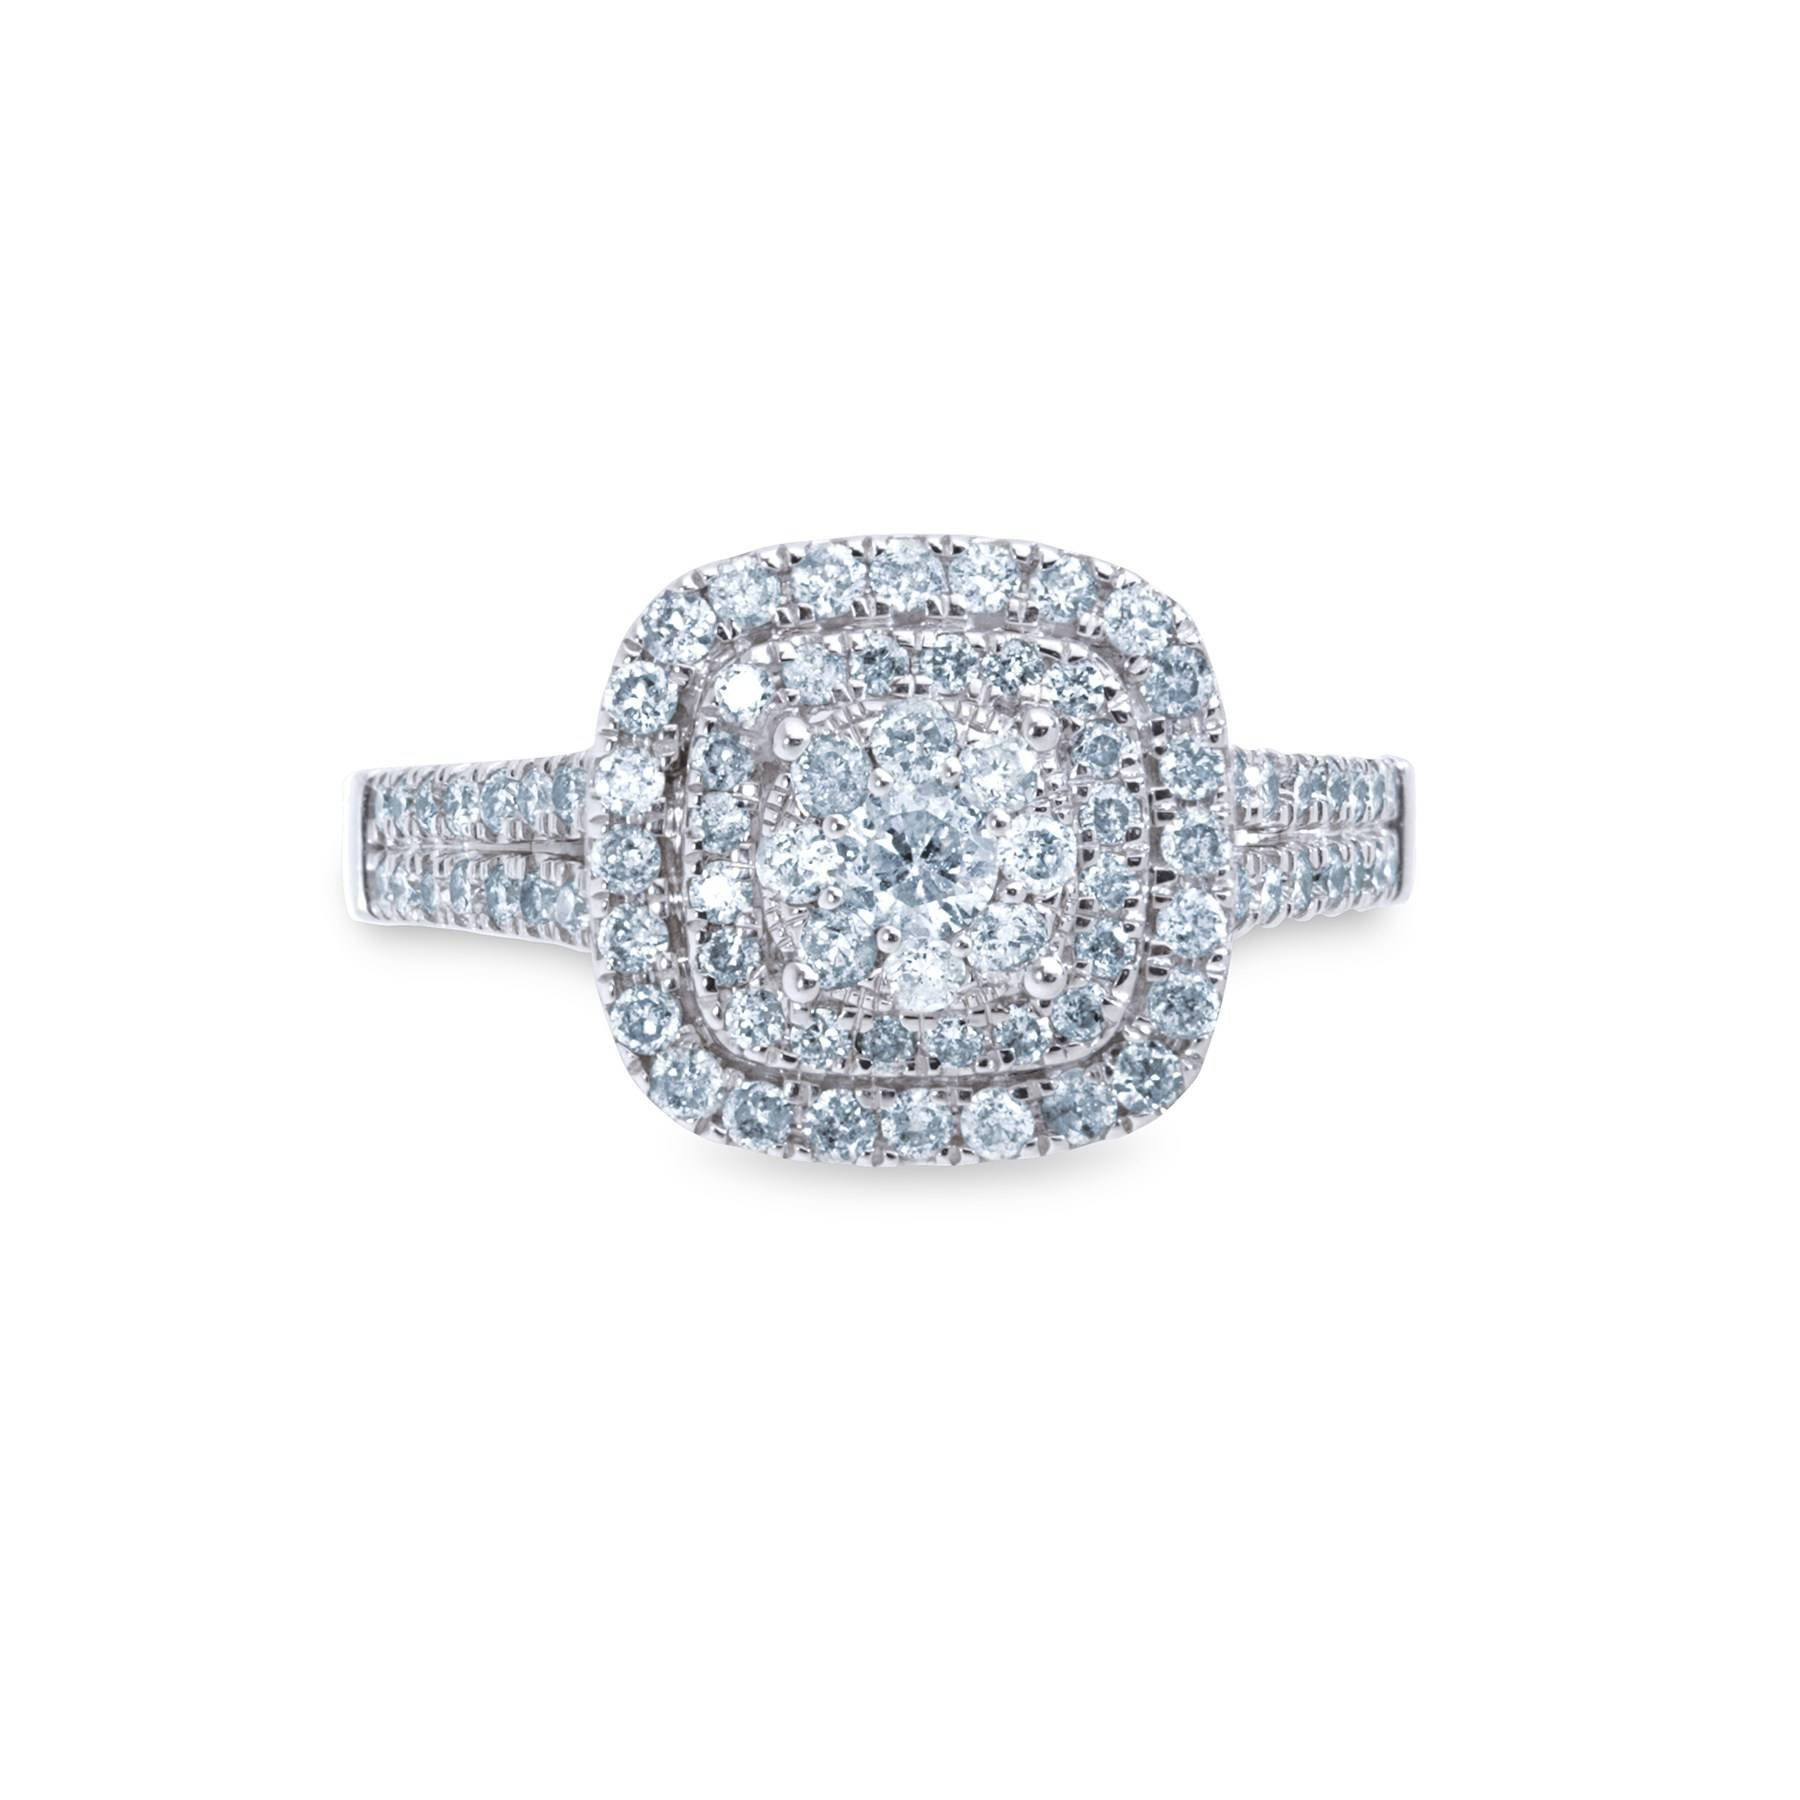 Engagement Rings : Stunning Engagement Rings Sears Kim Zolciak With Regard To Engagement Rings At Sears (View 11 of 15)